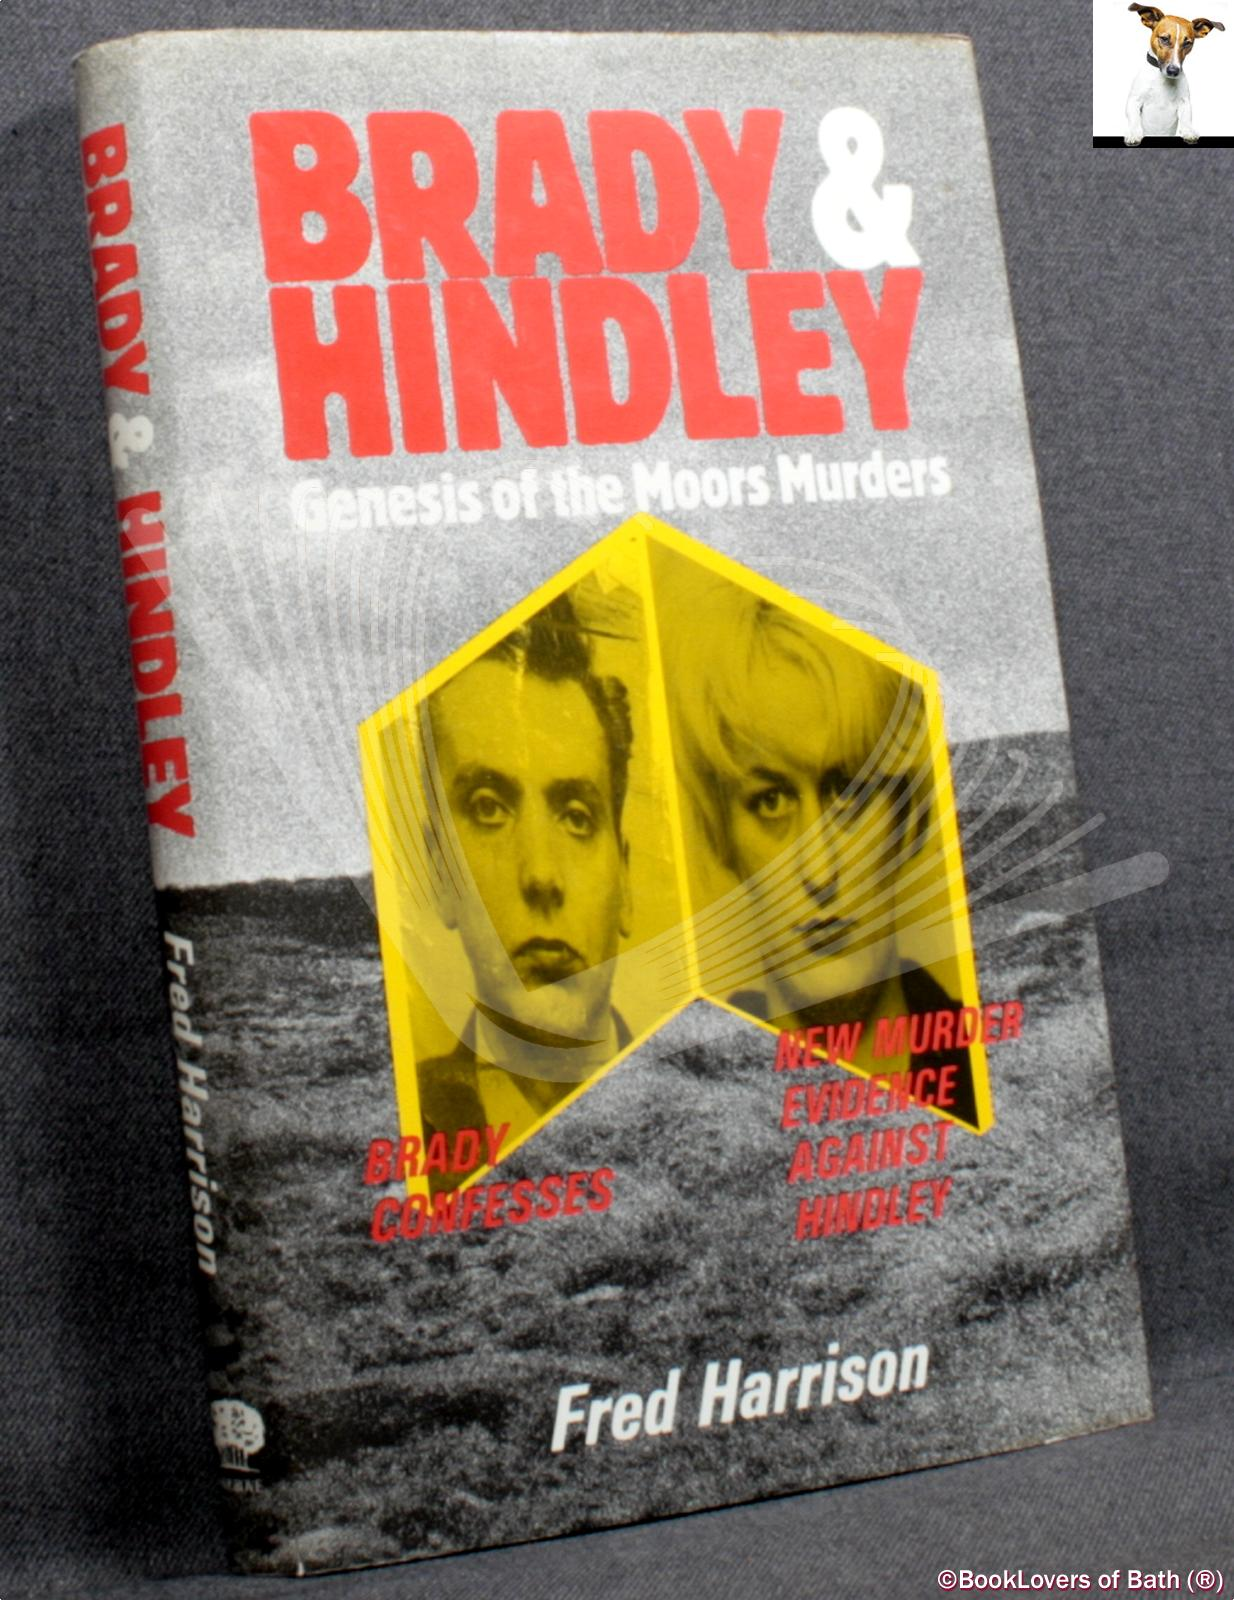 Brady and Hindley: Genesis of the Moors Murders - Fred Harrison